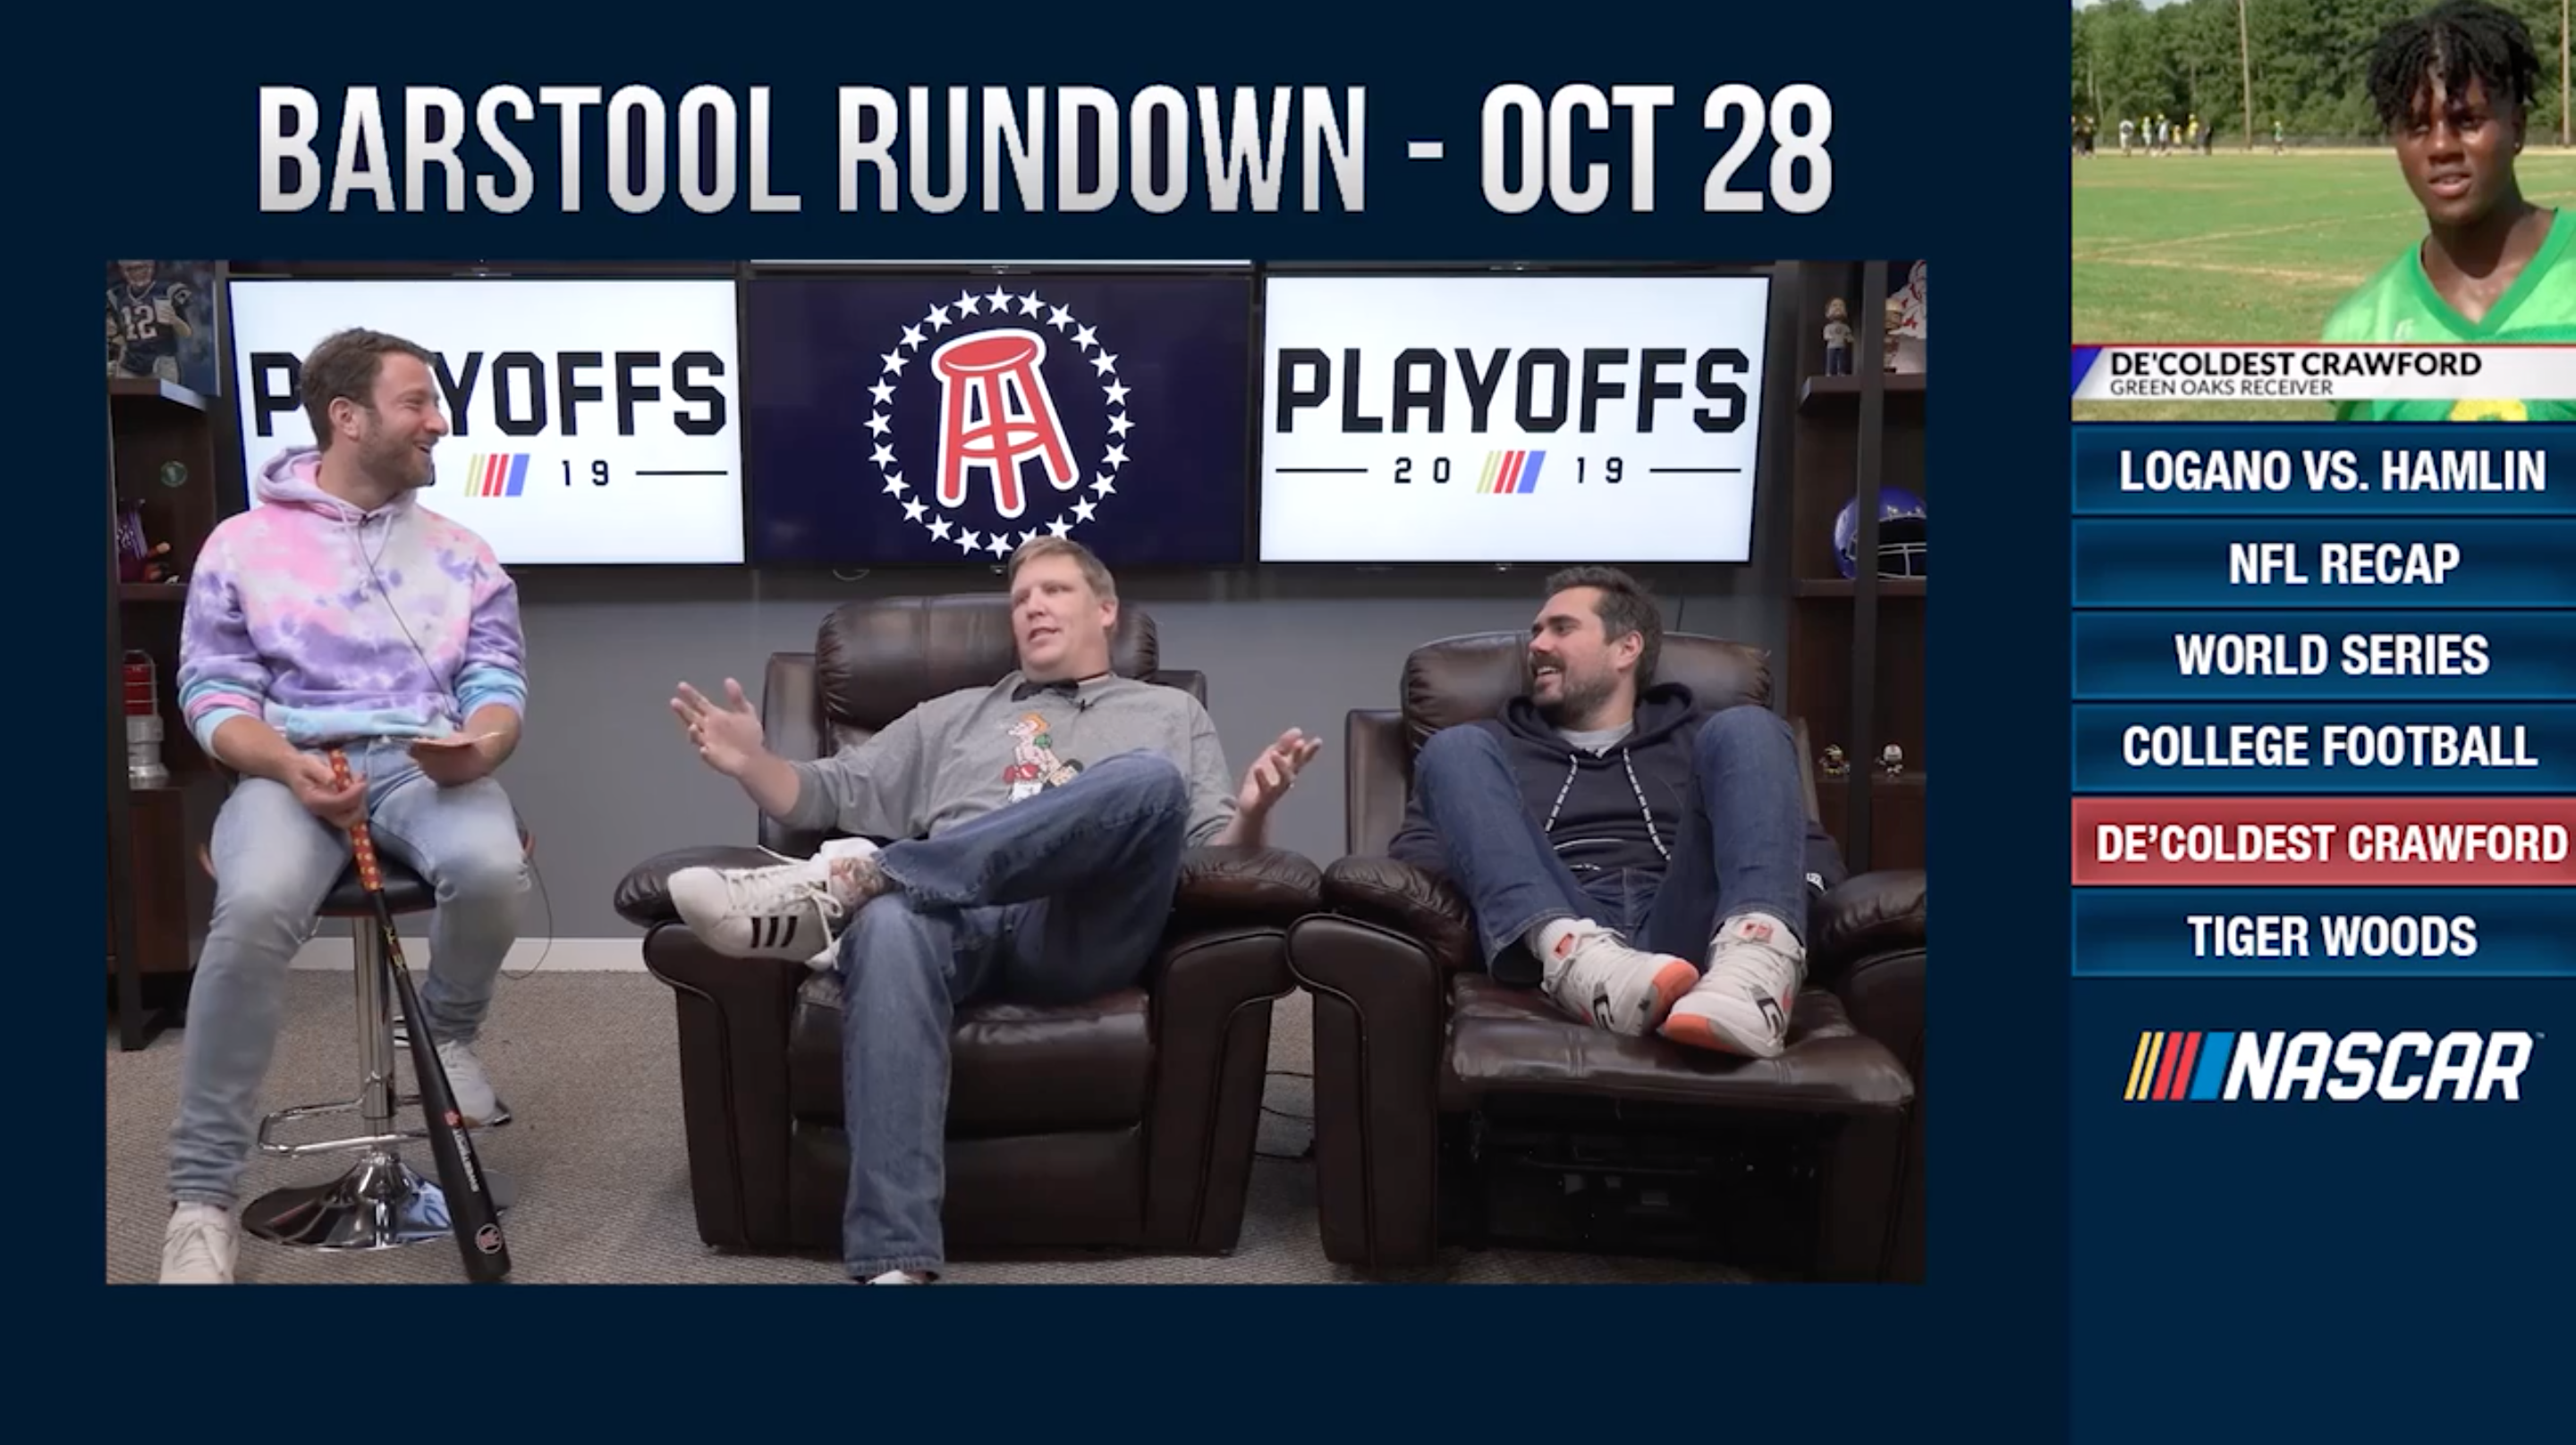 On Barstool Sports